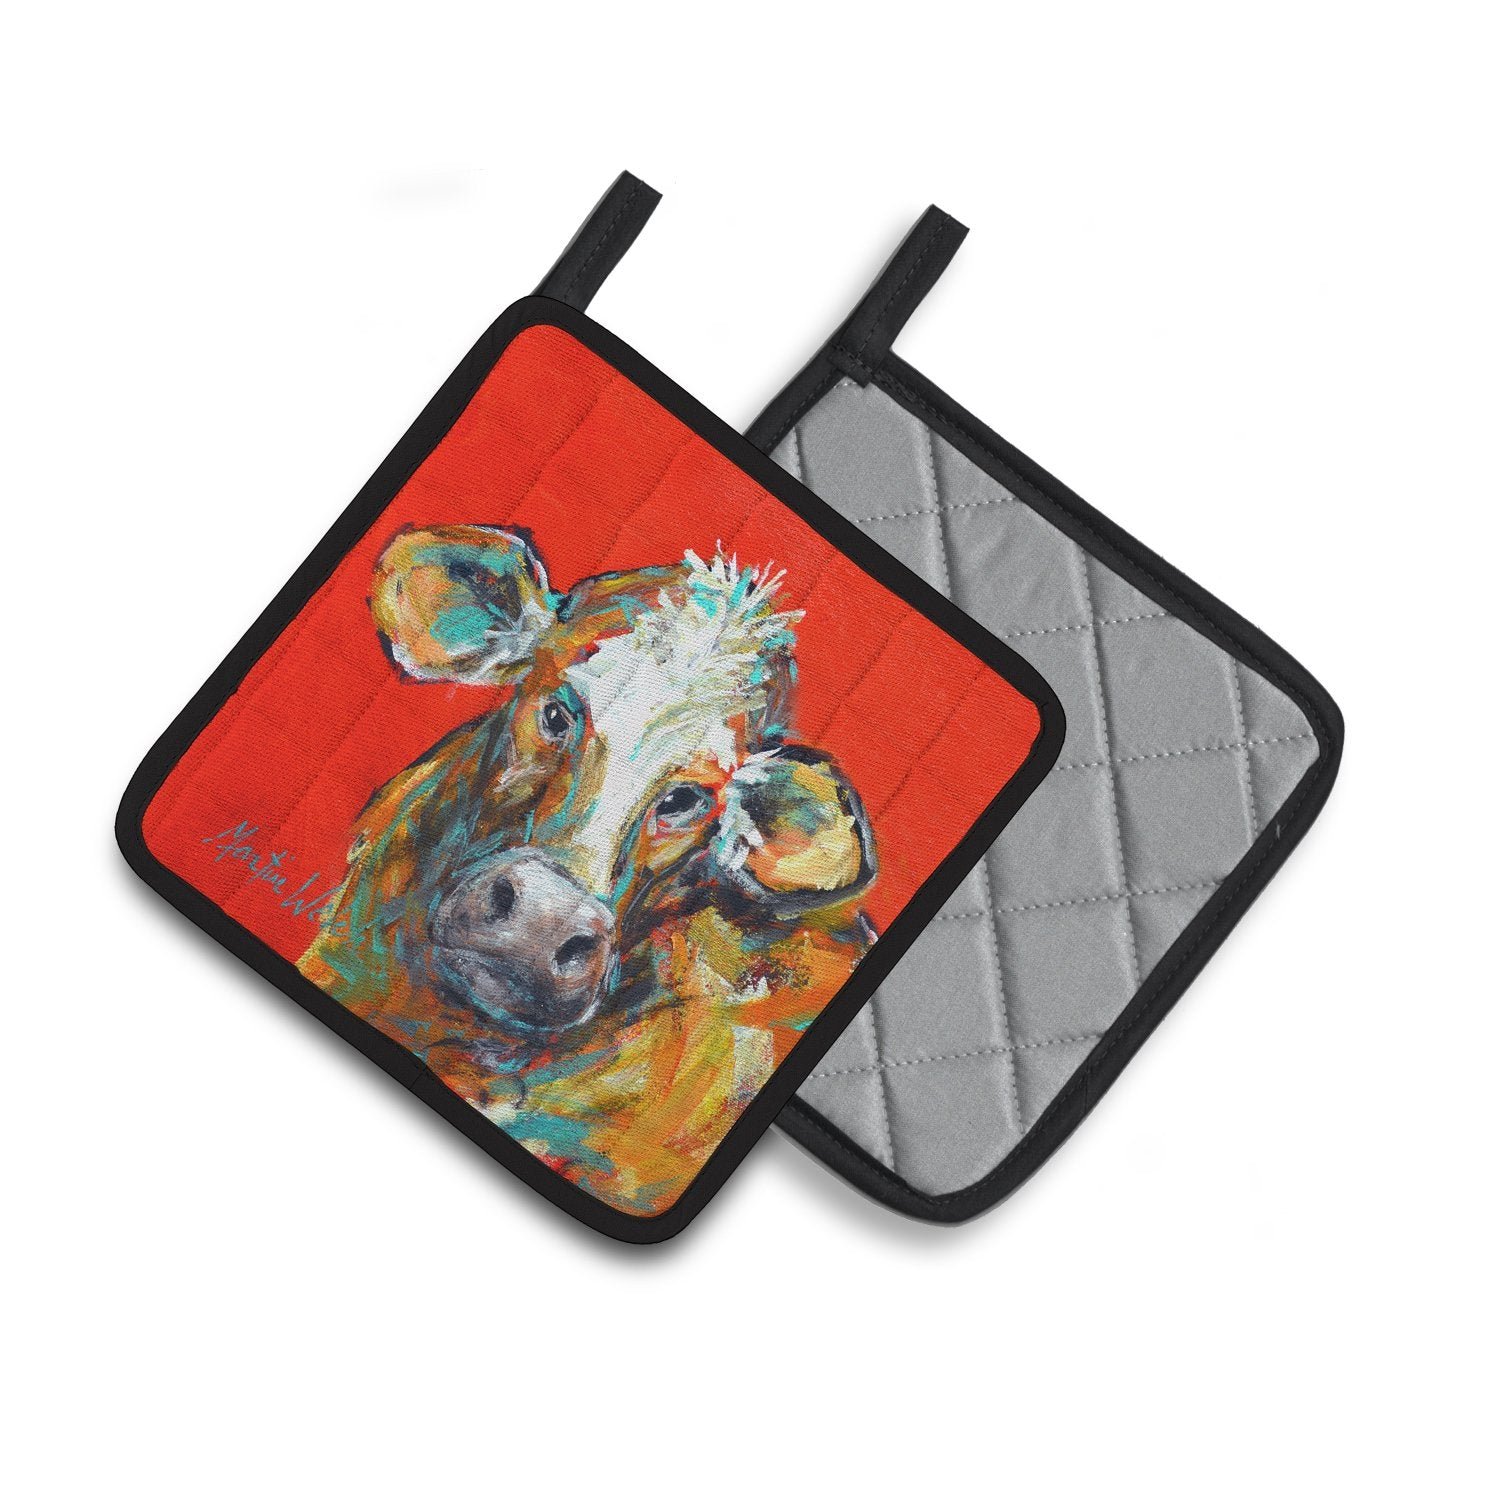 Cow Caught Red Handed Too Pair of Pot Holders MW1319PTHD by Caroline's Treasures